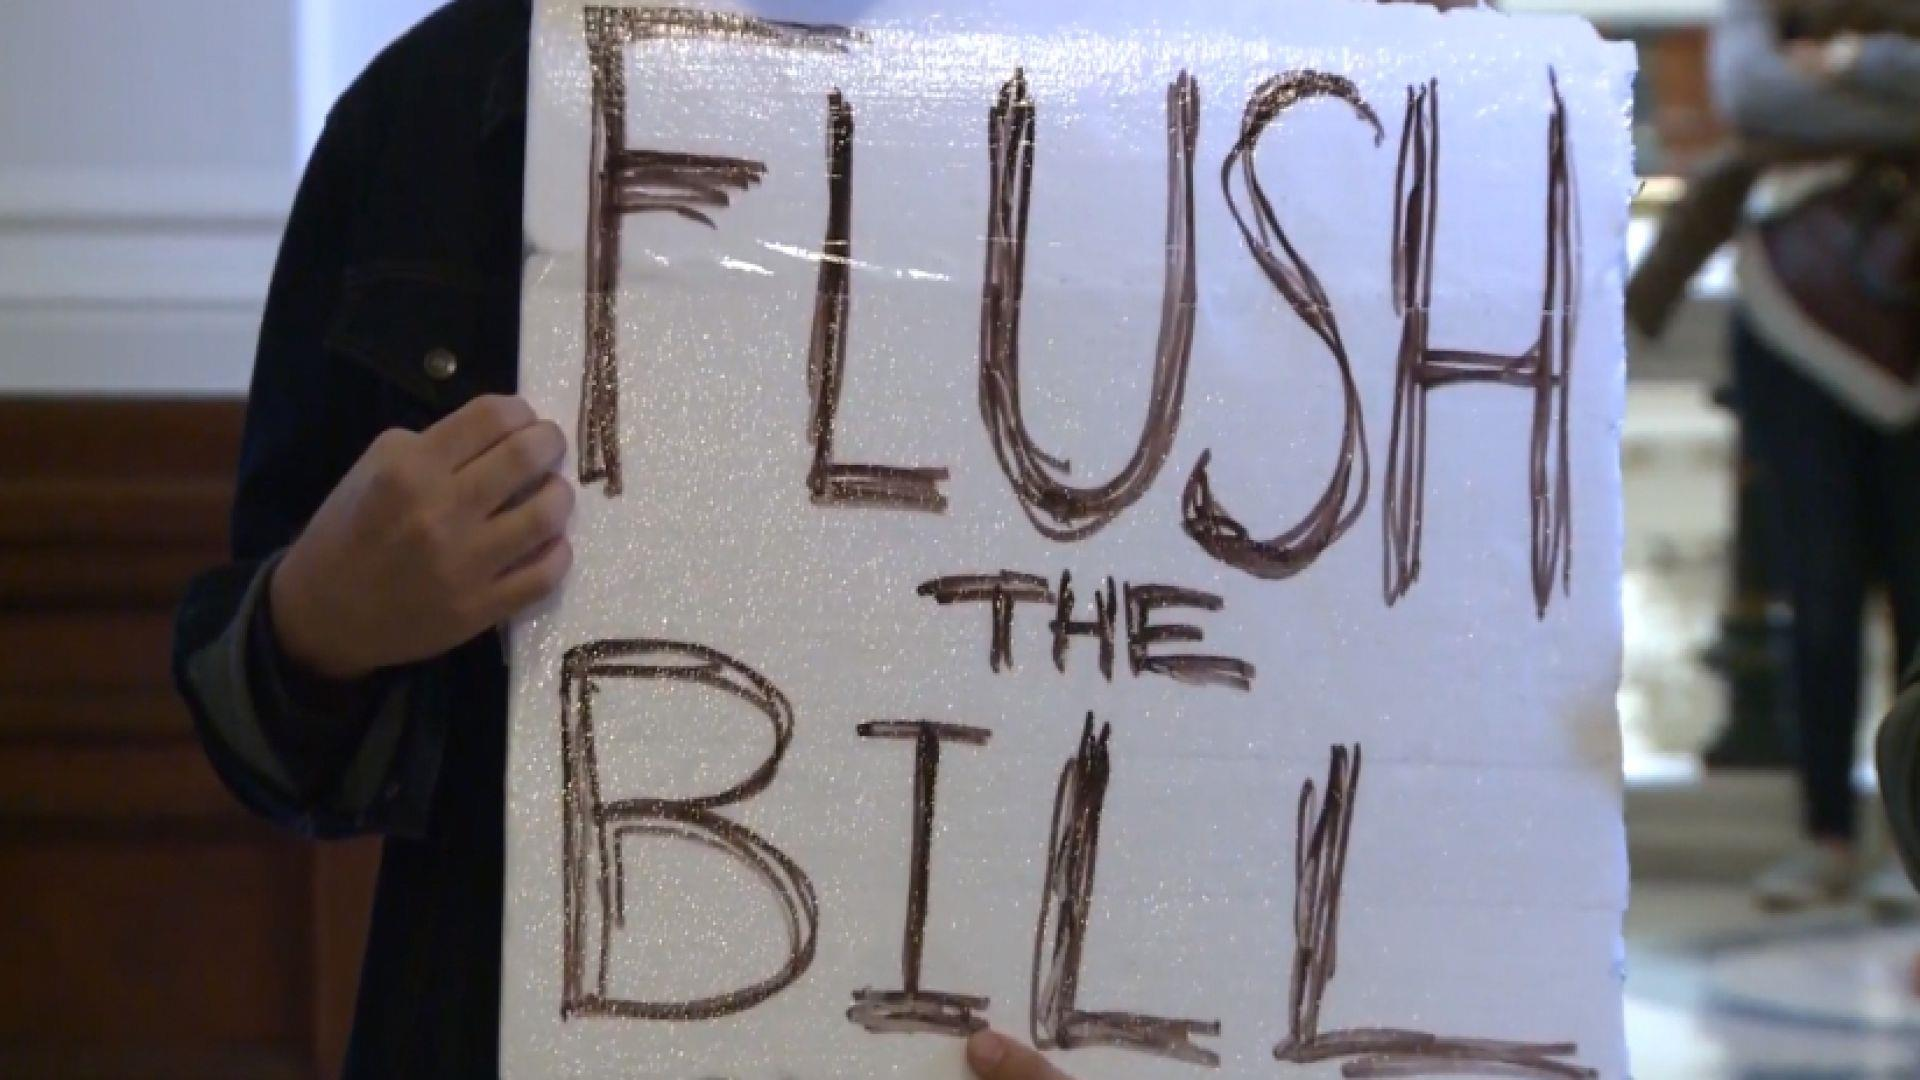 New texas bathroom bill causes protests nbc news - Which states have bathroom bills ...